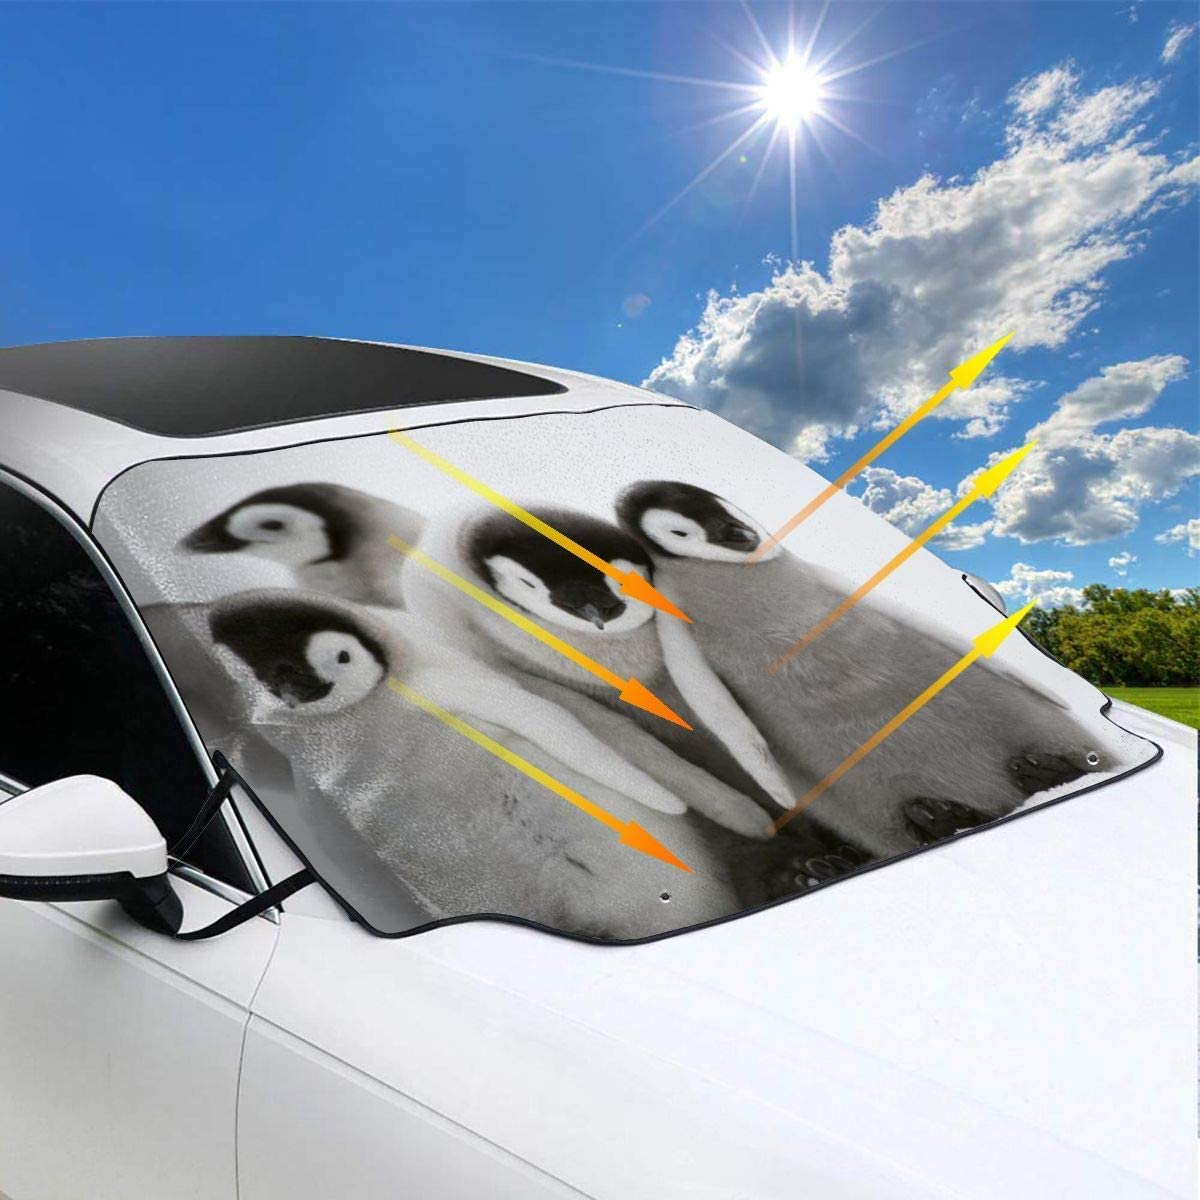 gklglg Many Penguins Cute Car Windwhield Sun Shades Universal Fit 130 70cm//51 28 Window Keep Your Vehicle Cool Visor for Car Truck SUV Sunshade Cover